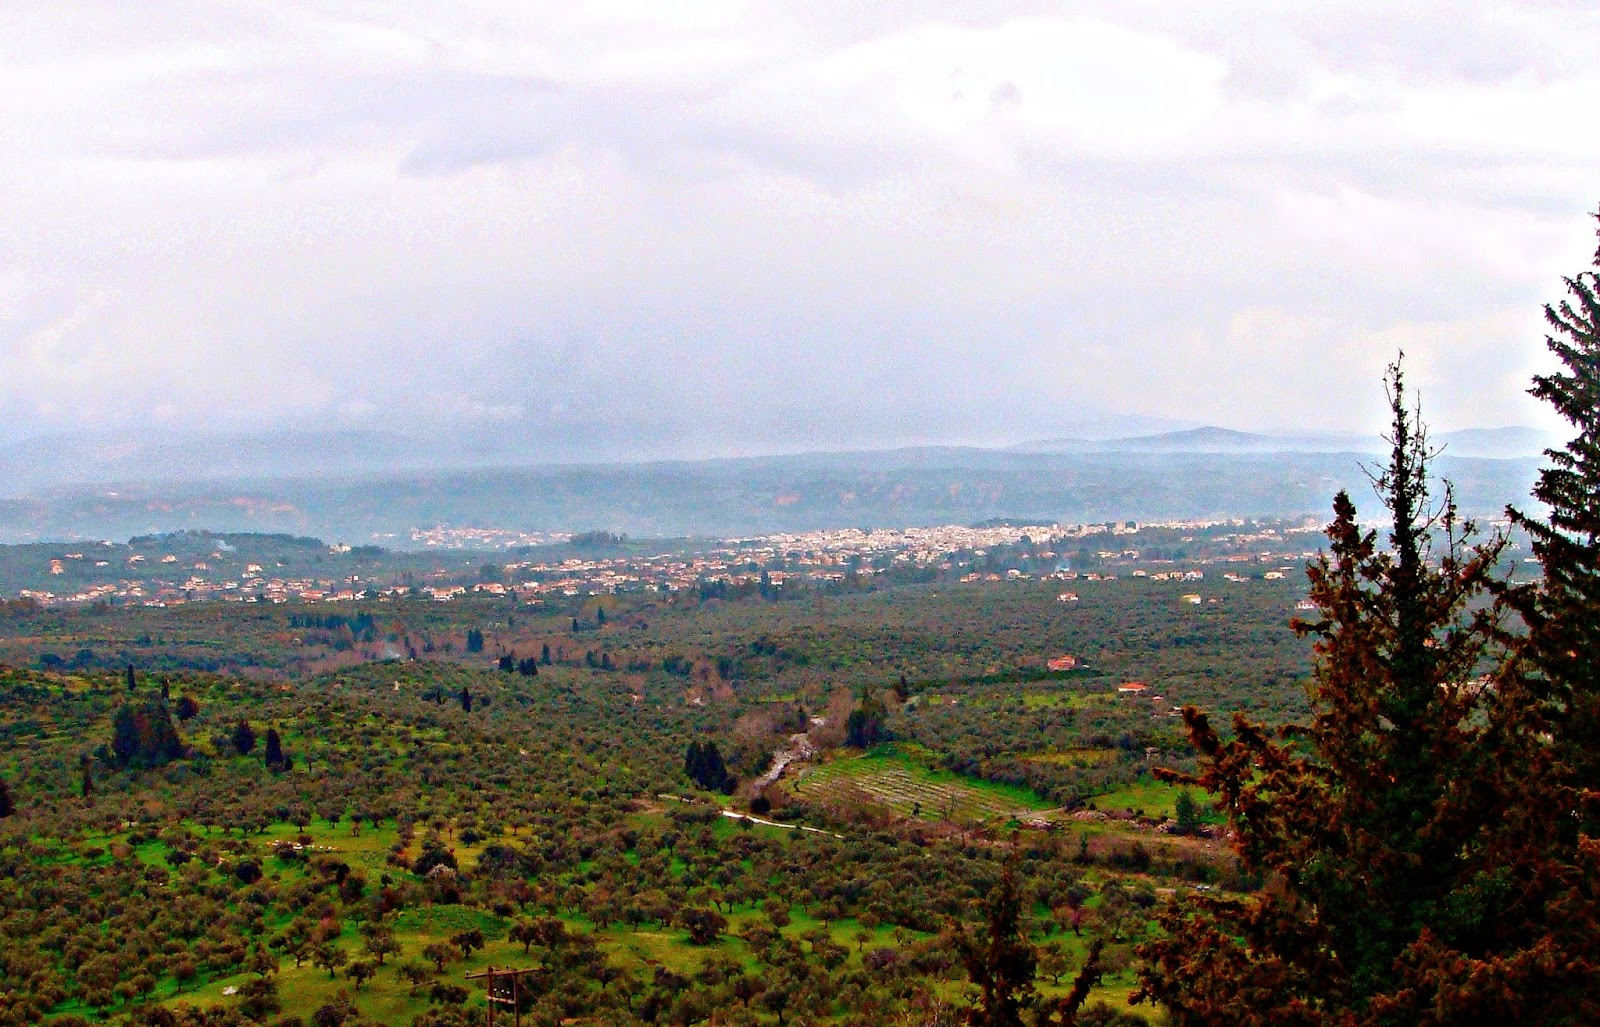 Looking across to Sparta from Mistra